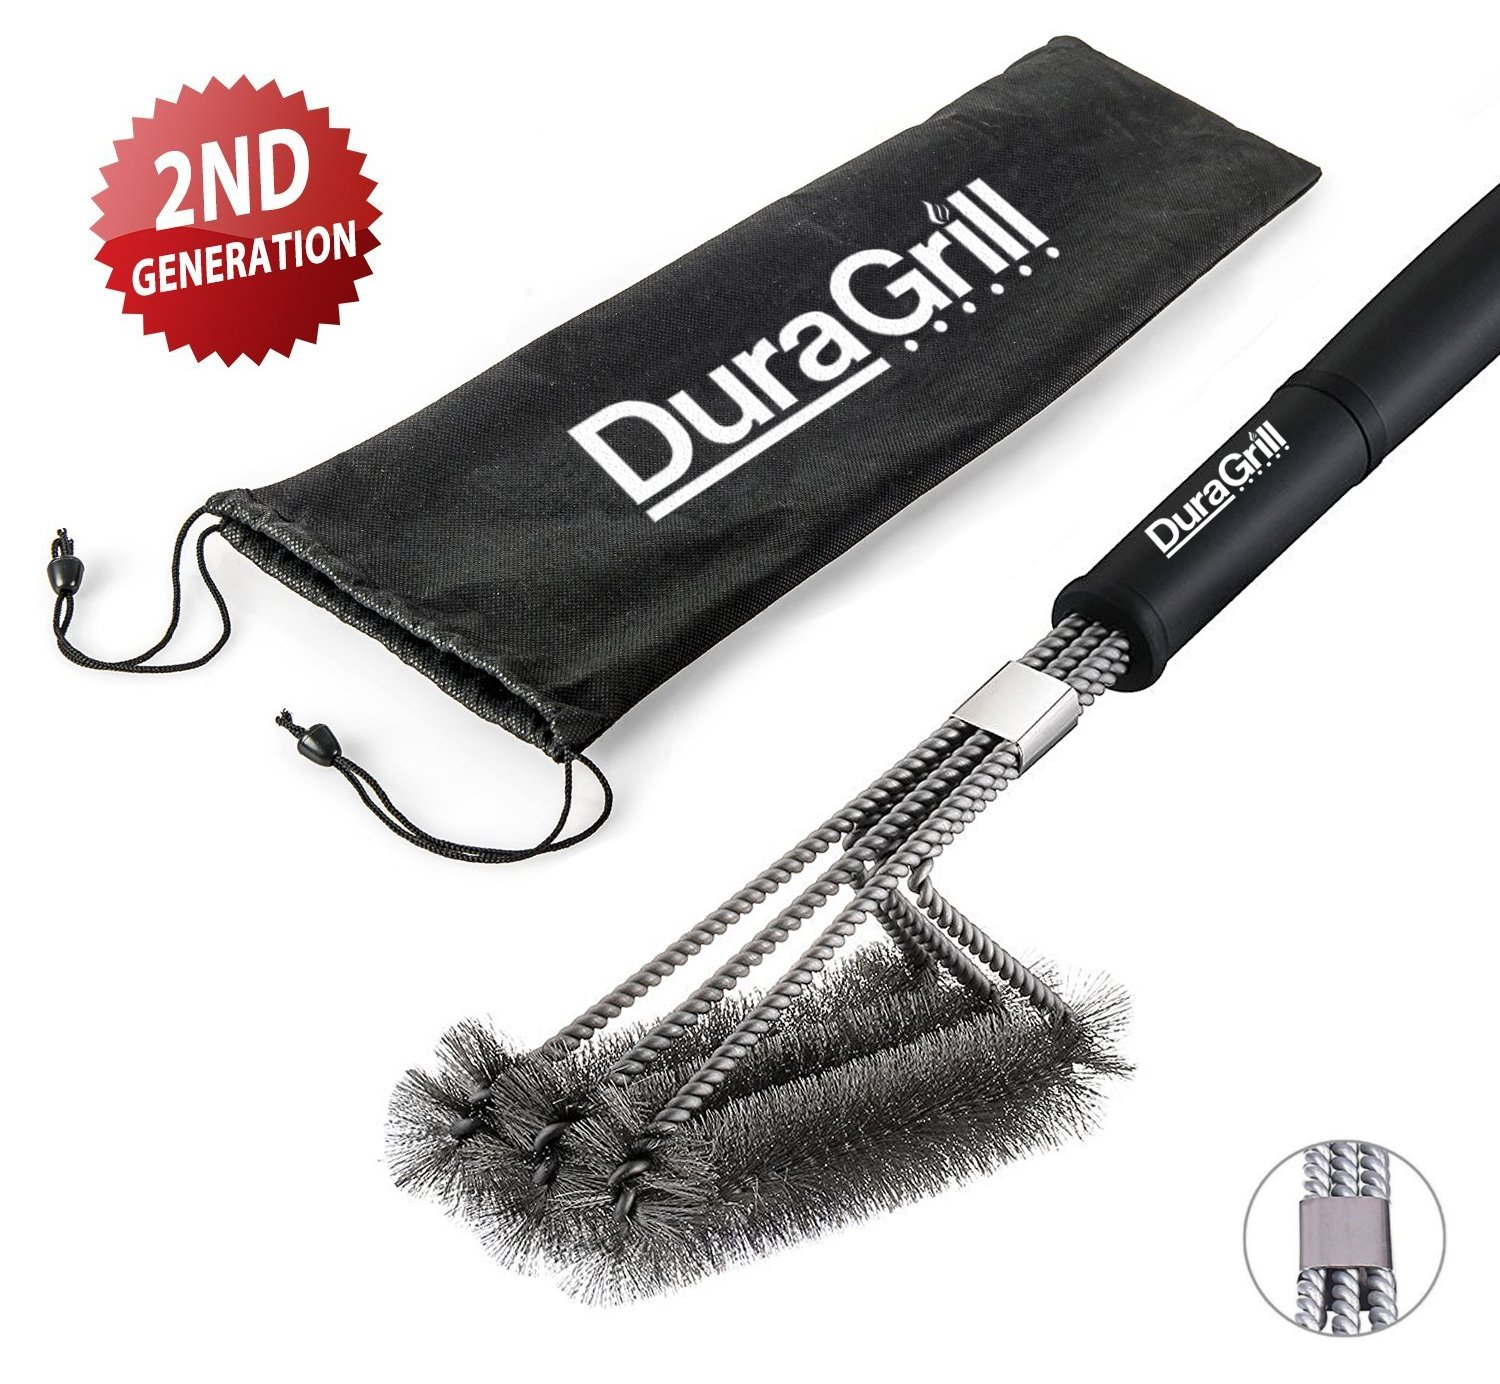 BBQ Grill Brush by DuraGrill™ - 18 - 3 Stainless Steel Brushes in 1 - Perfect for Char-Broil, Weber, Porcelain and Infrared Grills